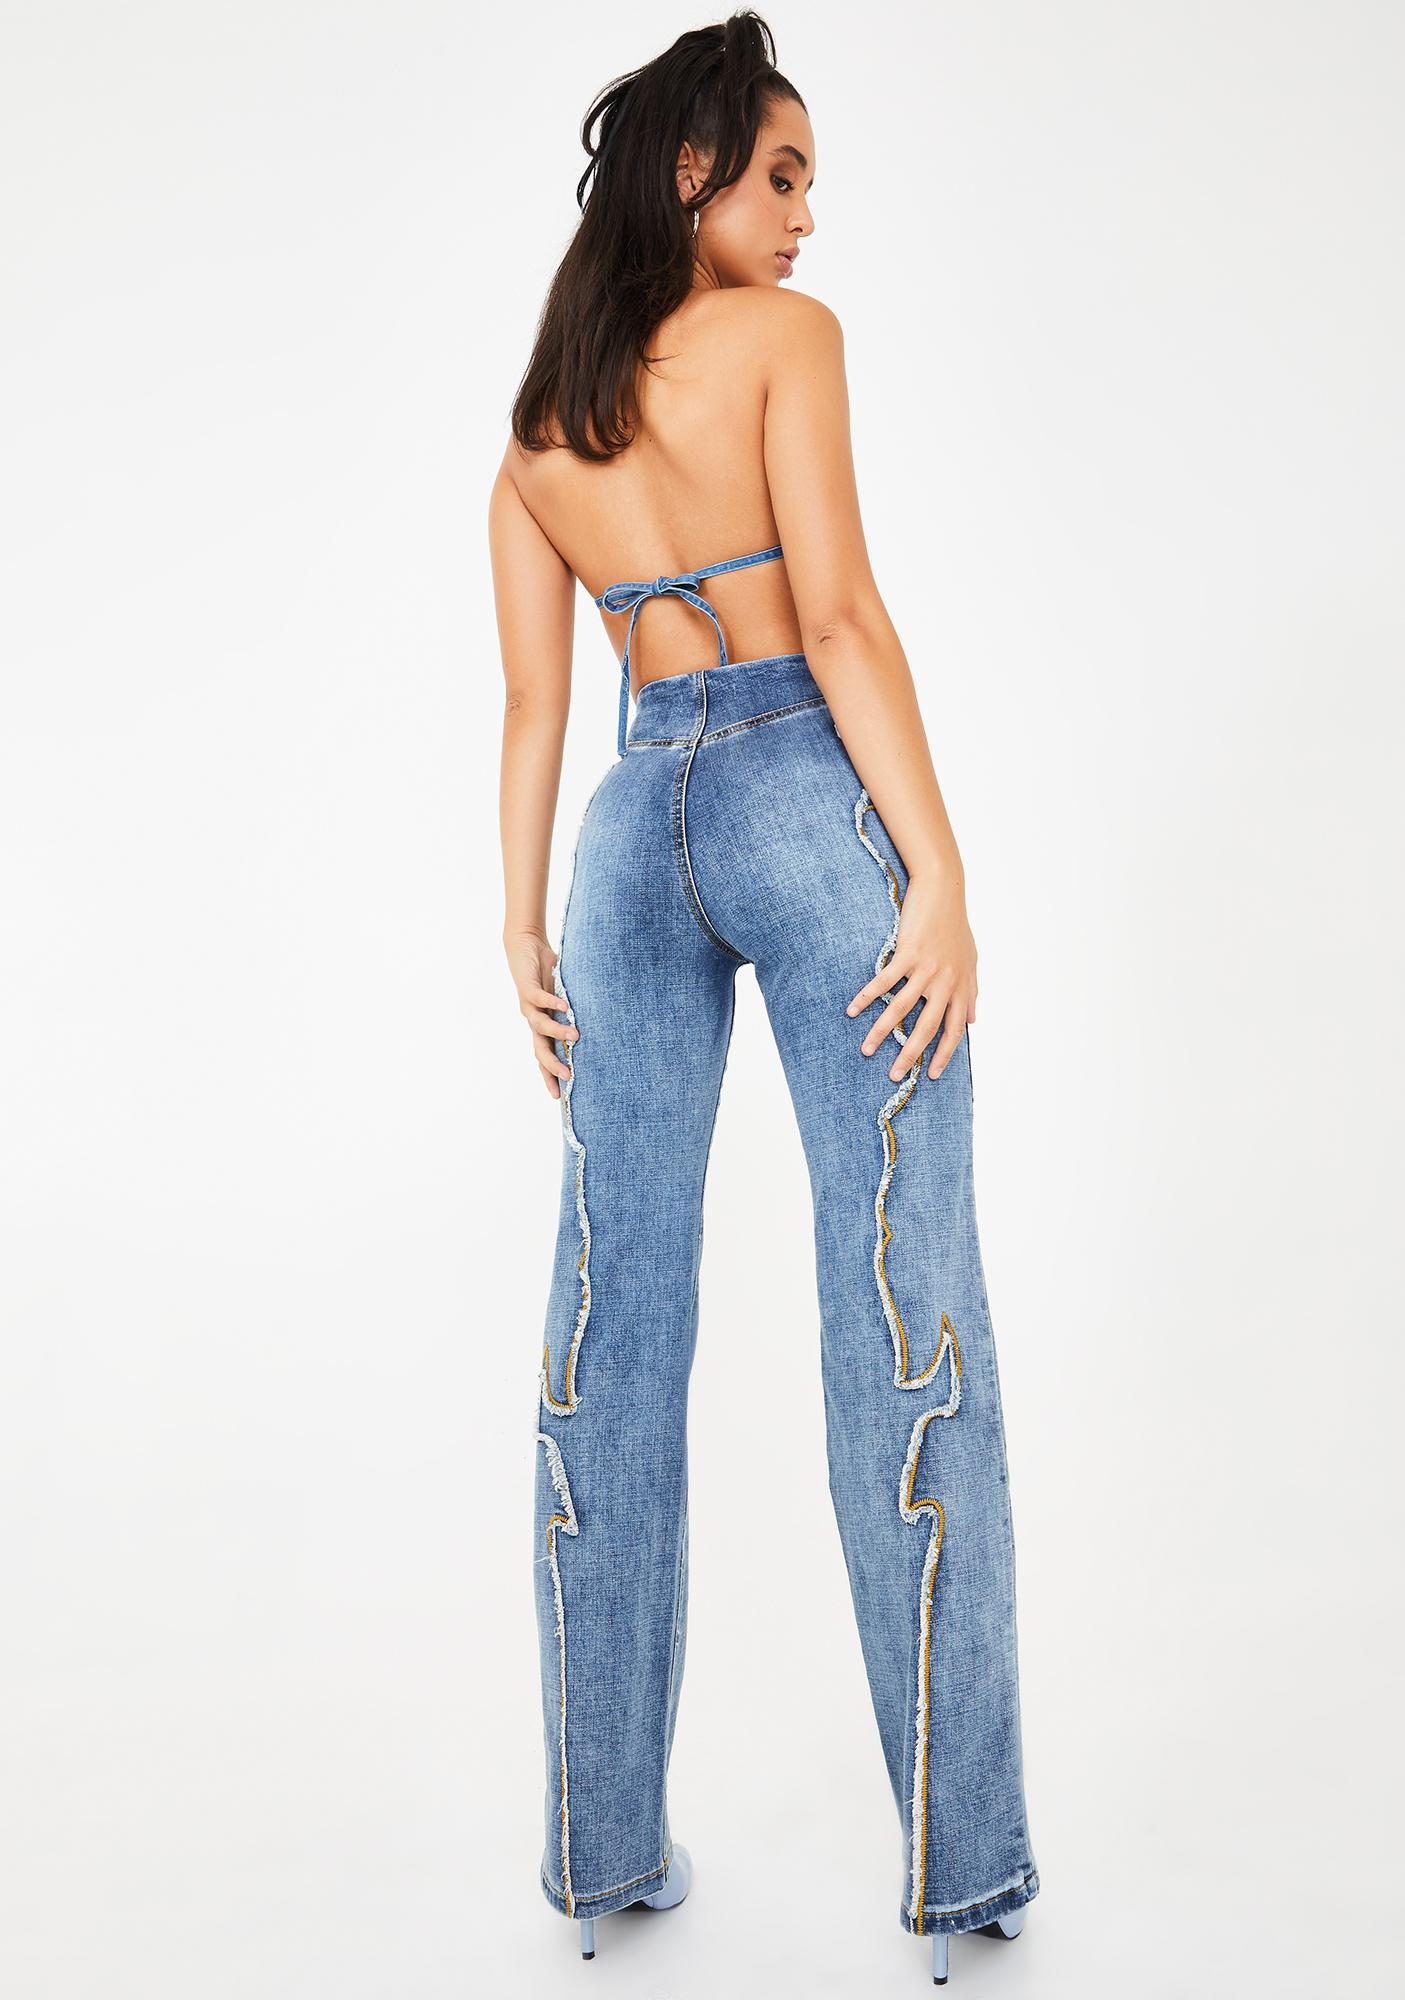 I AM GIA Kennedy Wide Leg Jeans